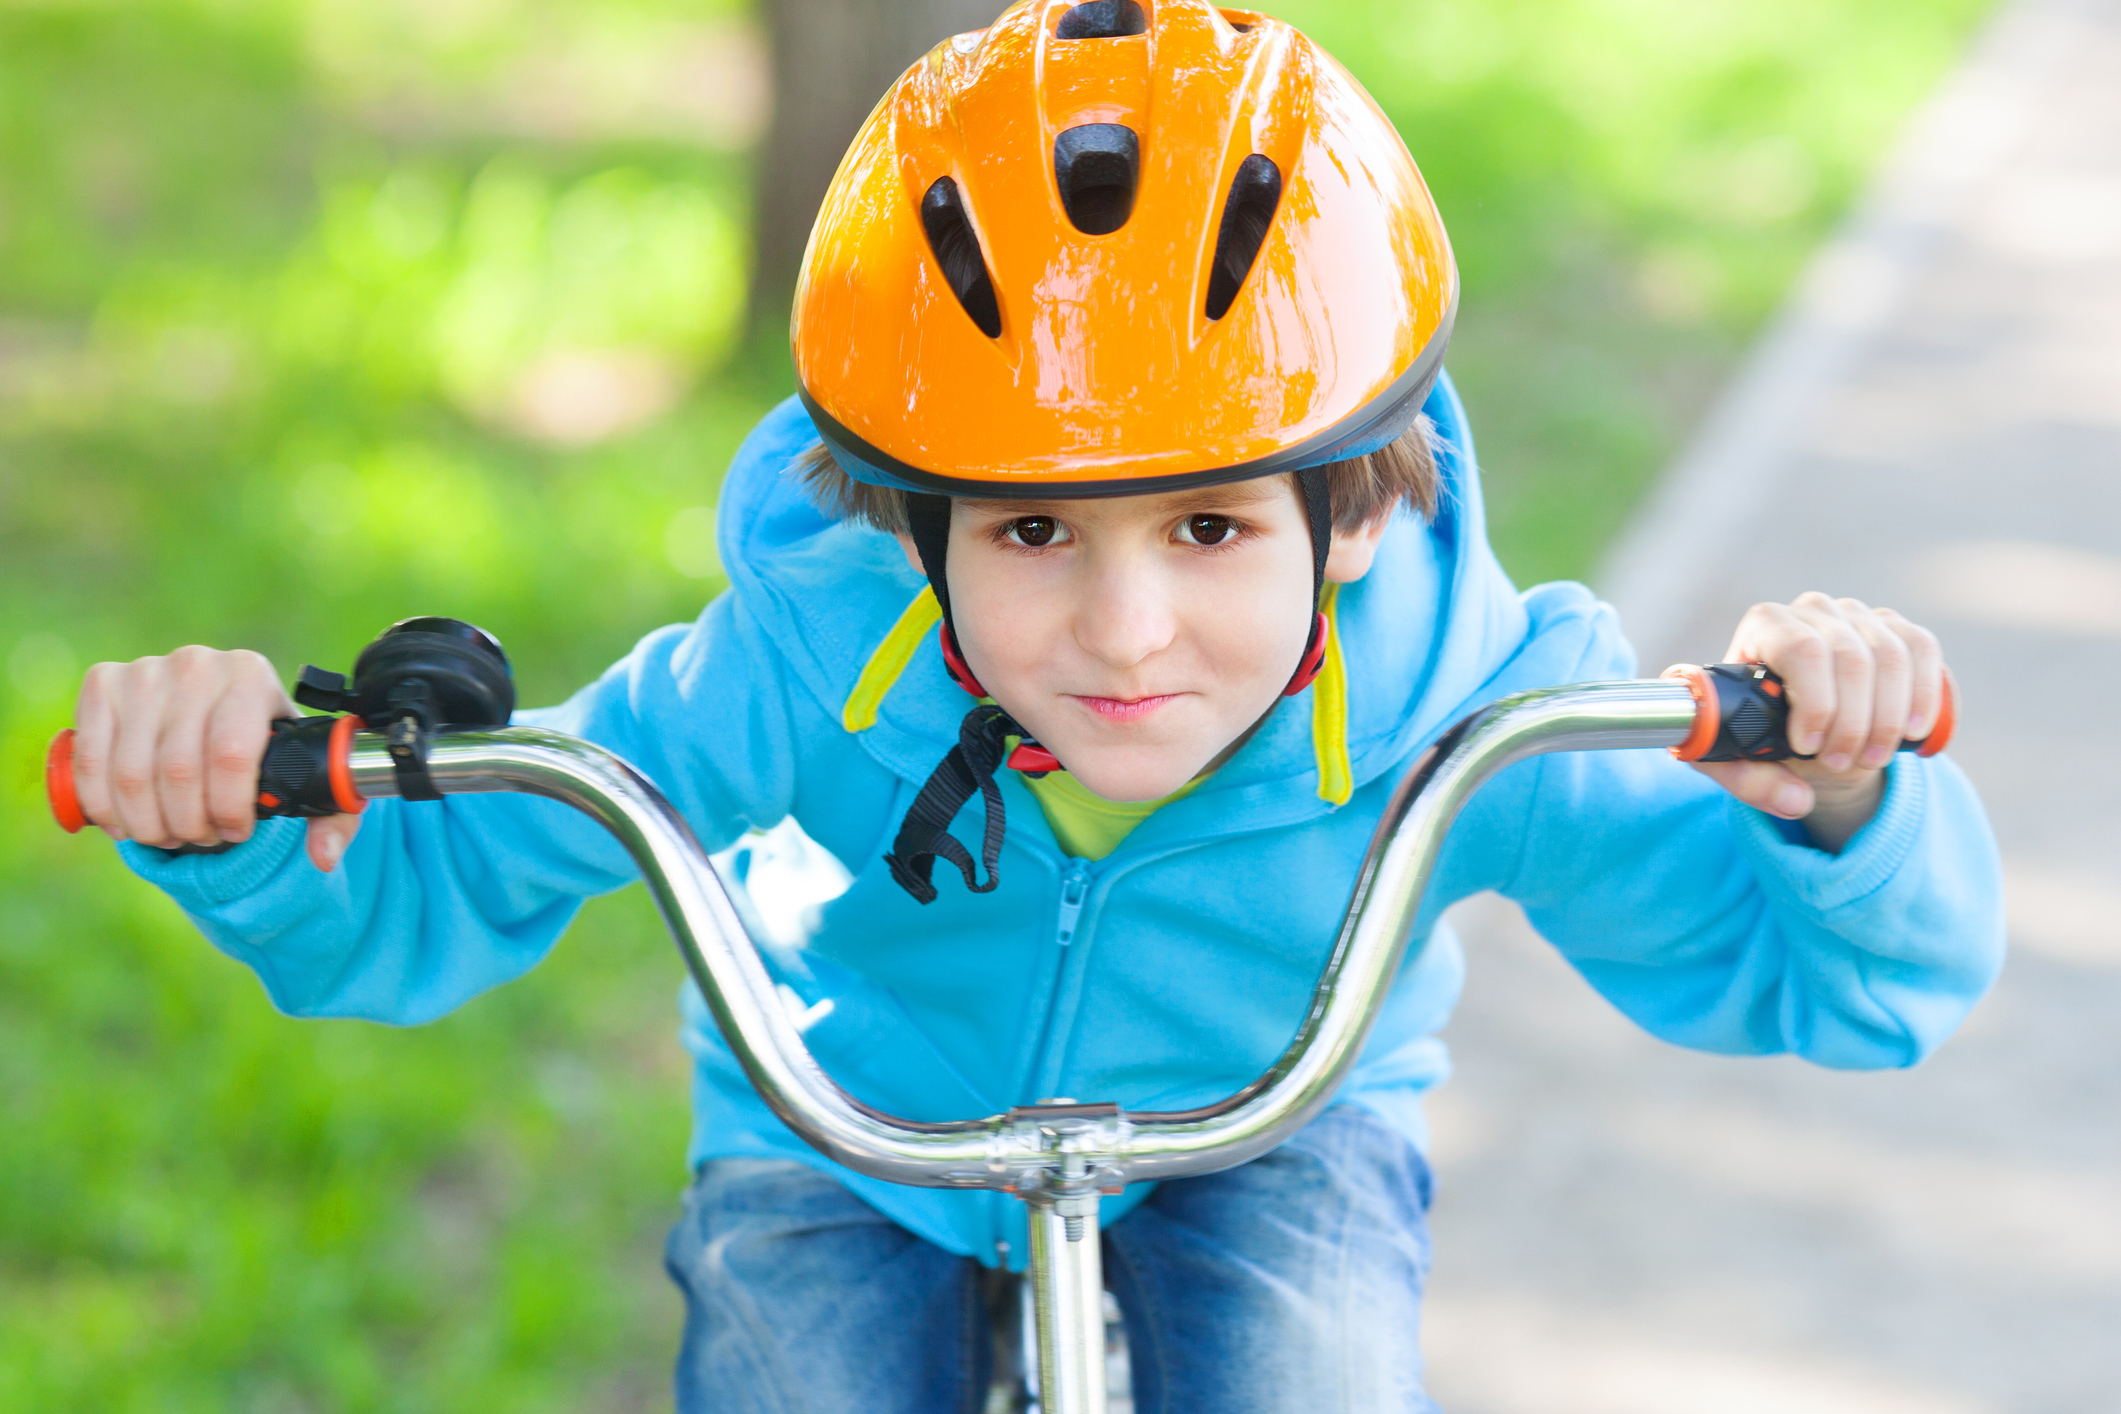 The small boy in blue fleece jacket ride a cycle in park at summer time